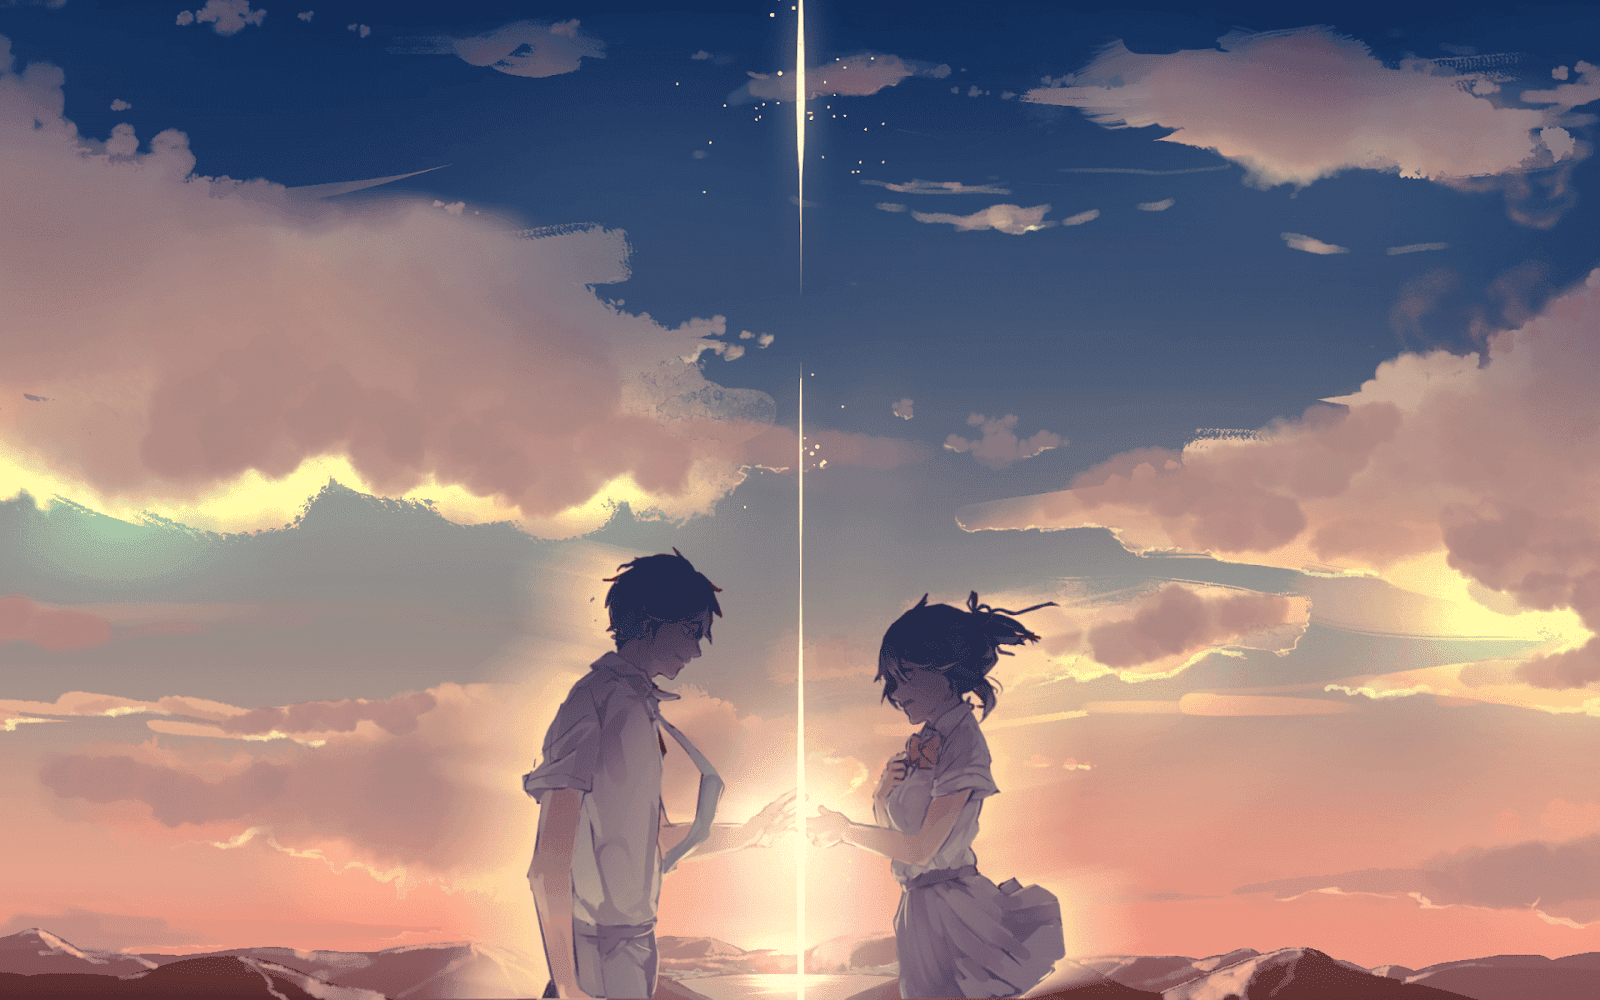 AowVN%2B%252840%2529 - [ Hình Nền ] Anime Your Name. - Kimi no Nawa full HD cực đẹp | Anime Wallpaper